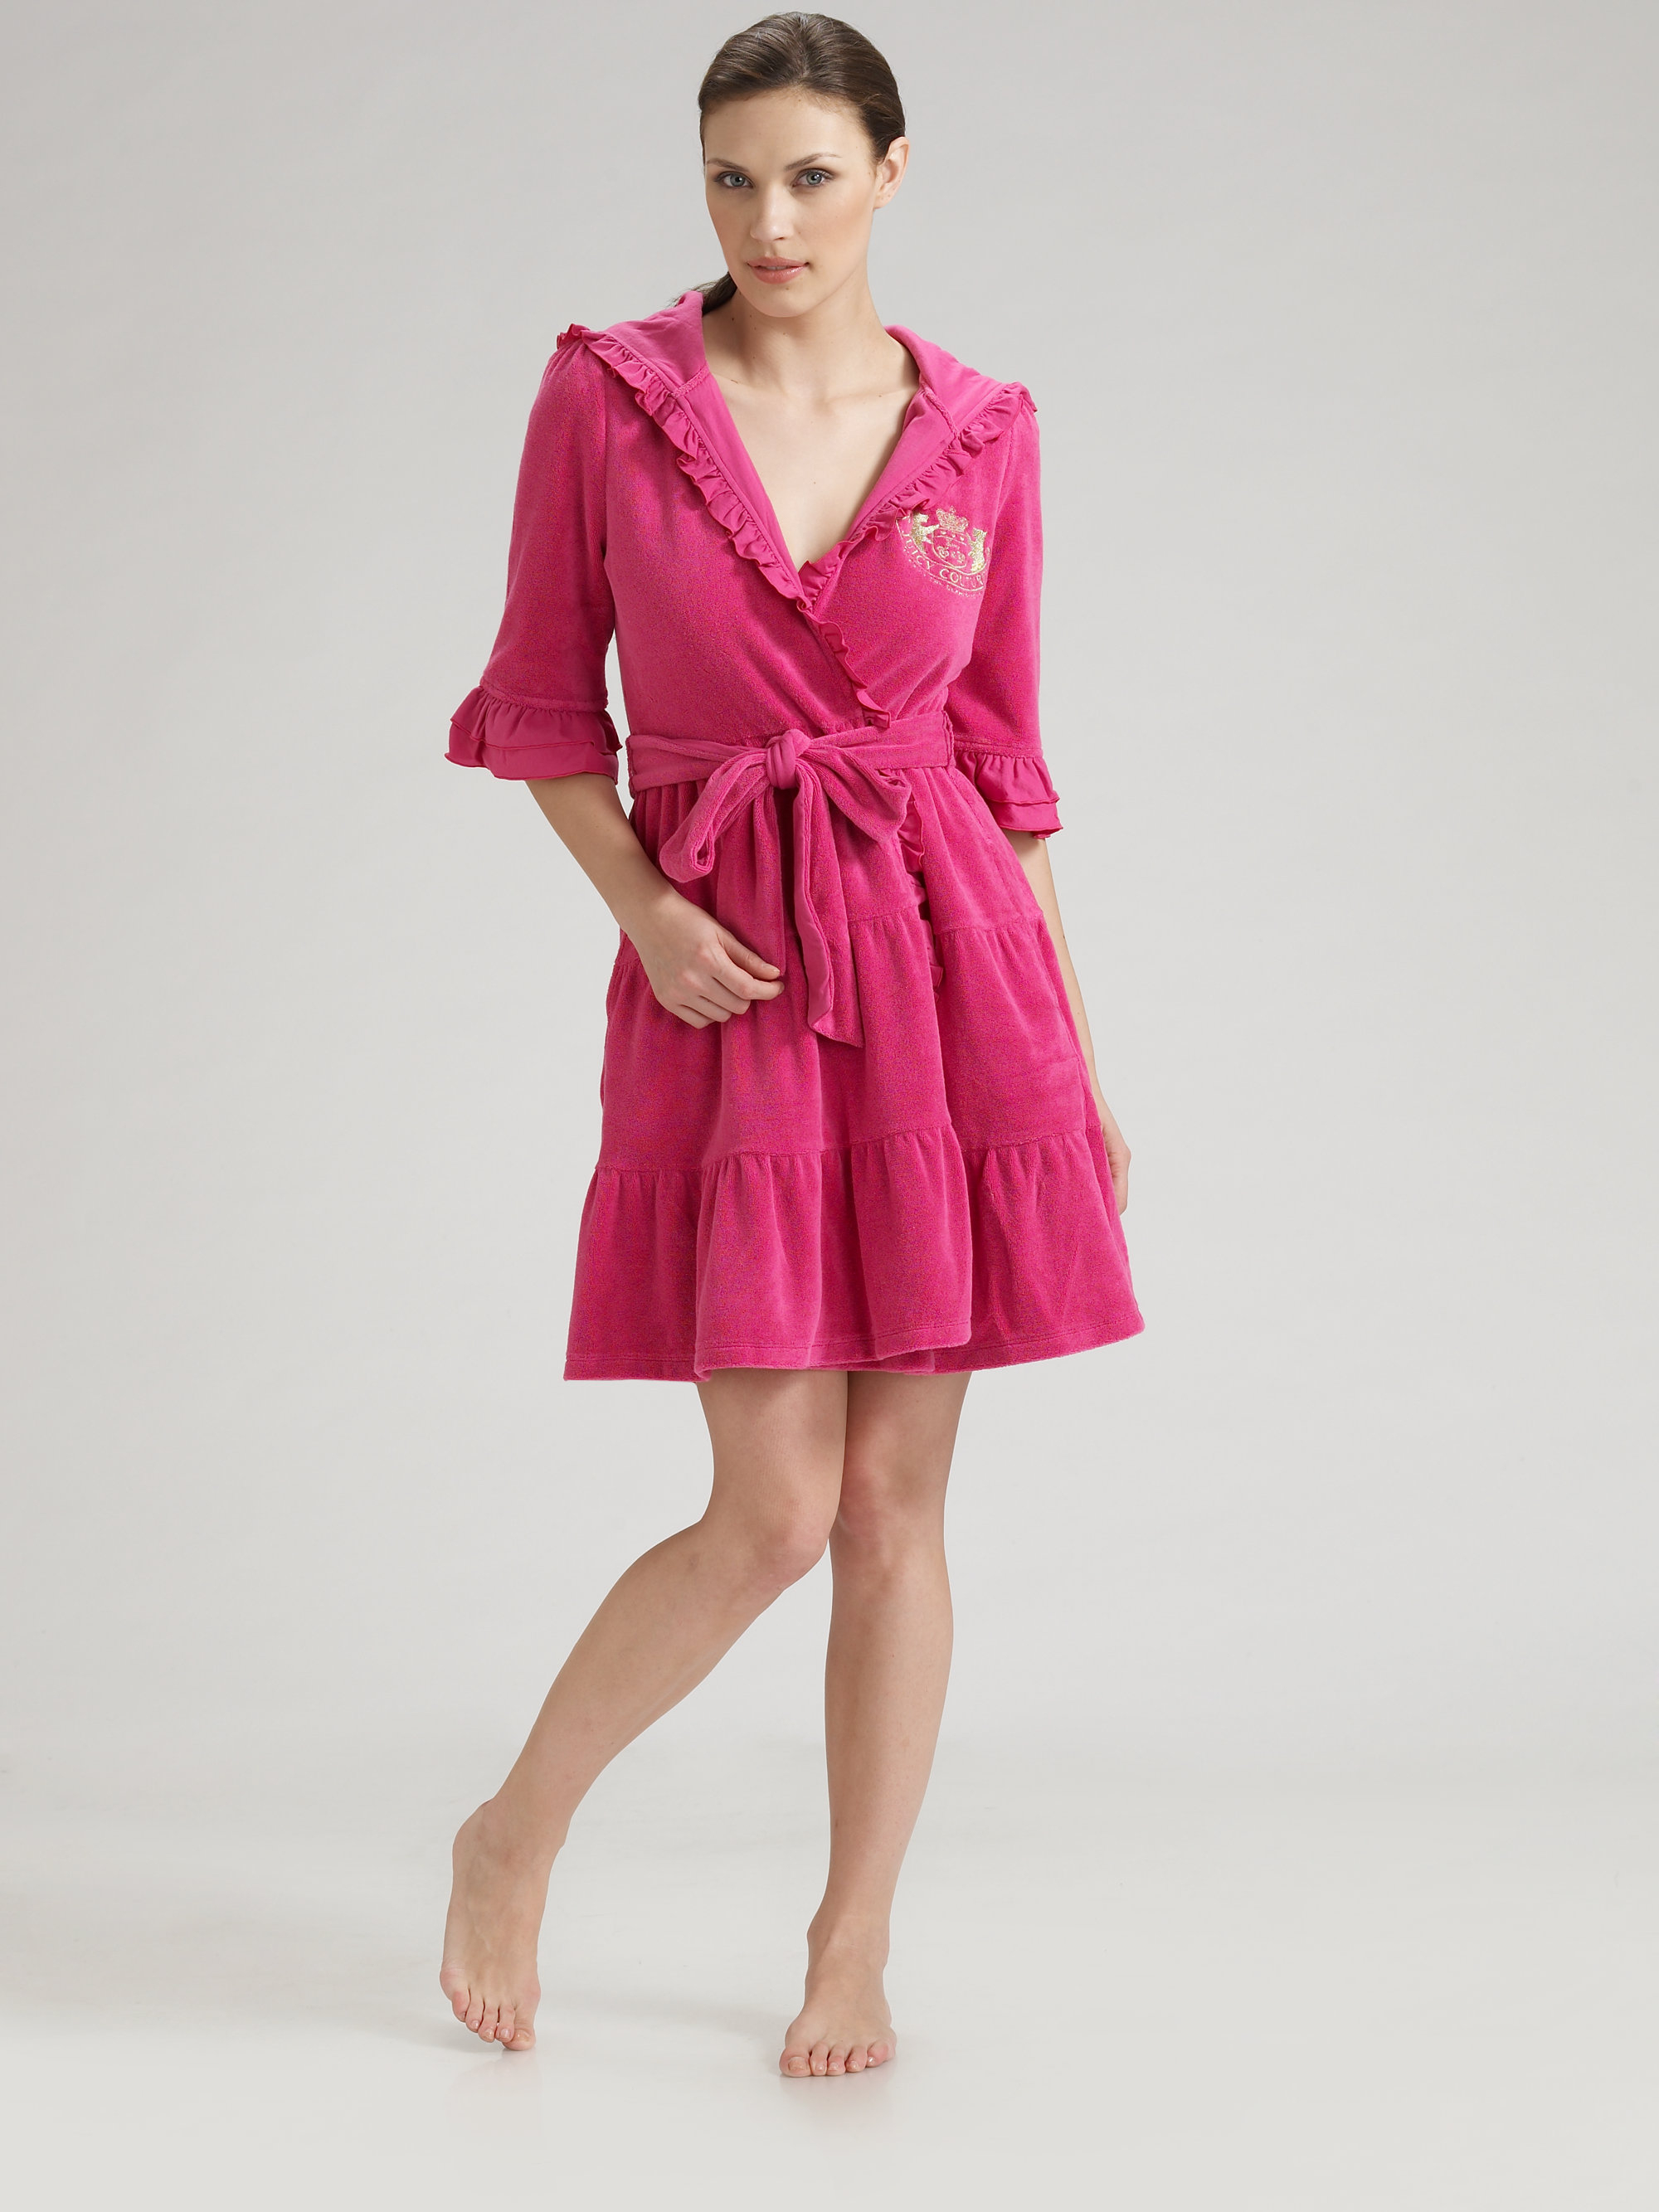 bce4626077 Lyst - Juicy Couture Hooded Ruffled Terry Robe in Pink